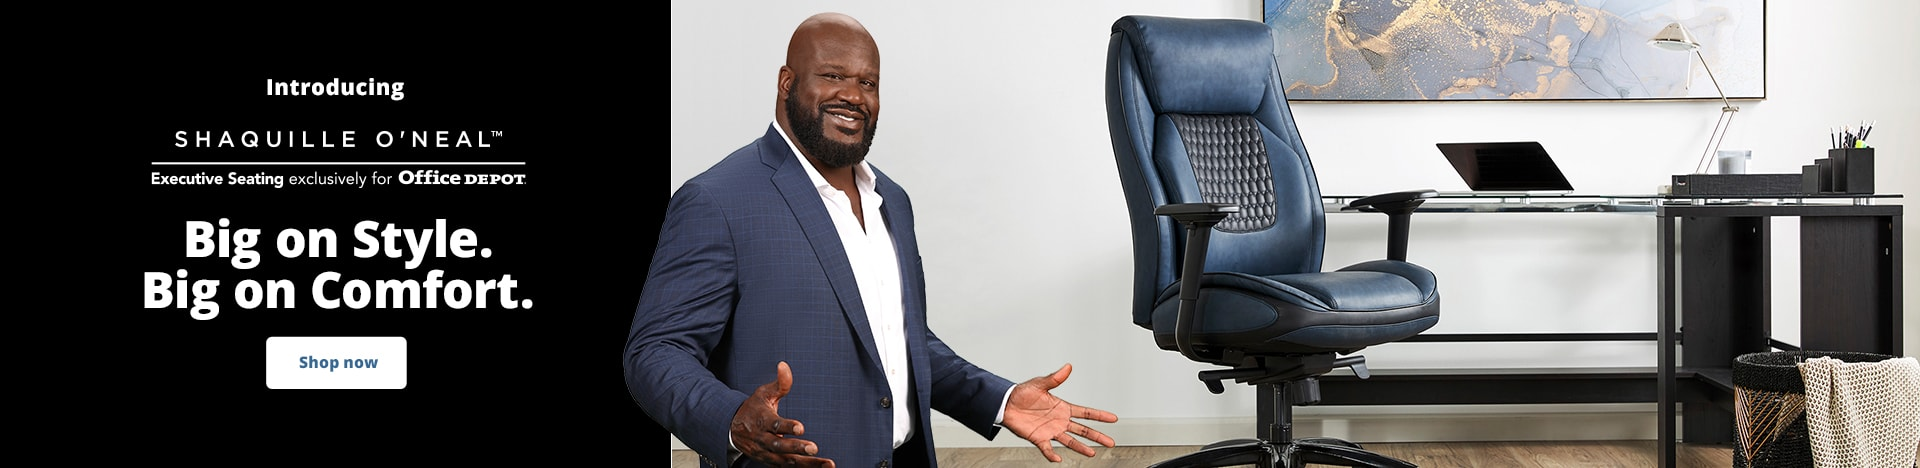 Introducing Shaquille O'Neal™ Exclusive Seating exclusively for Office Depot. Big on Style. Big on Comfort.